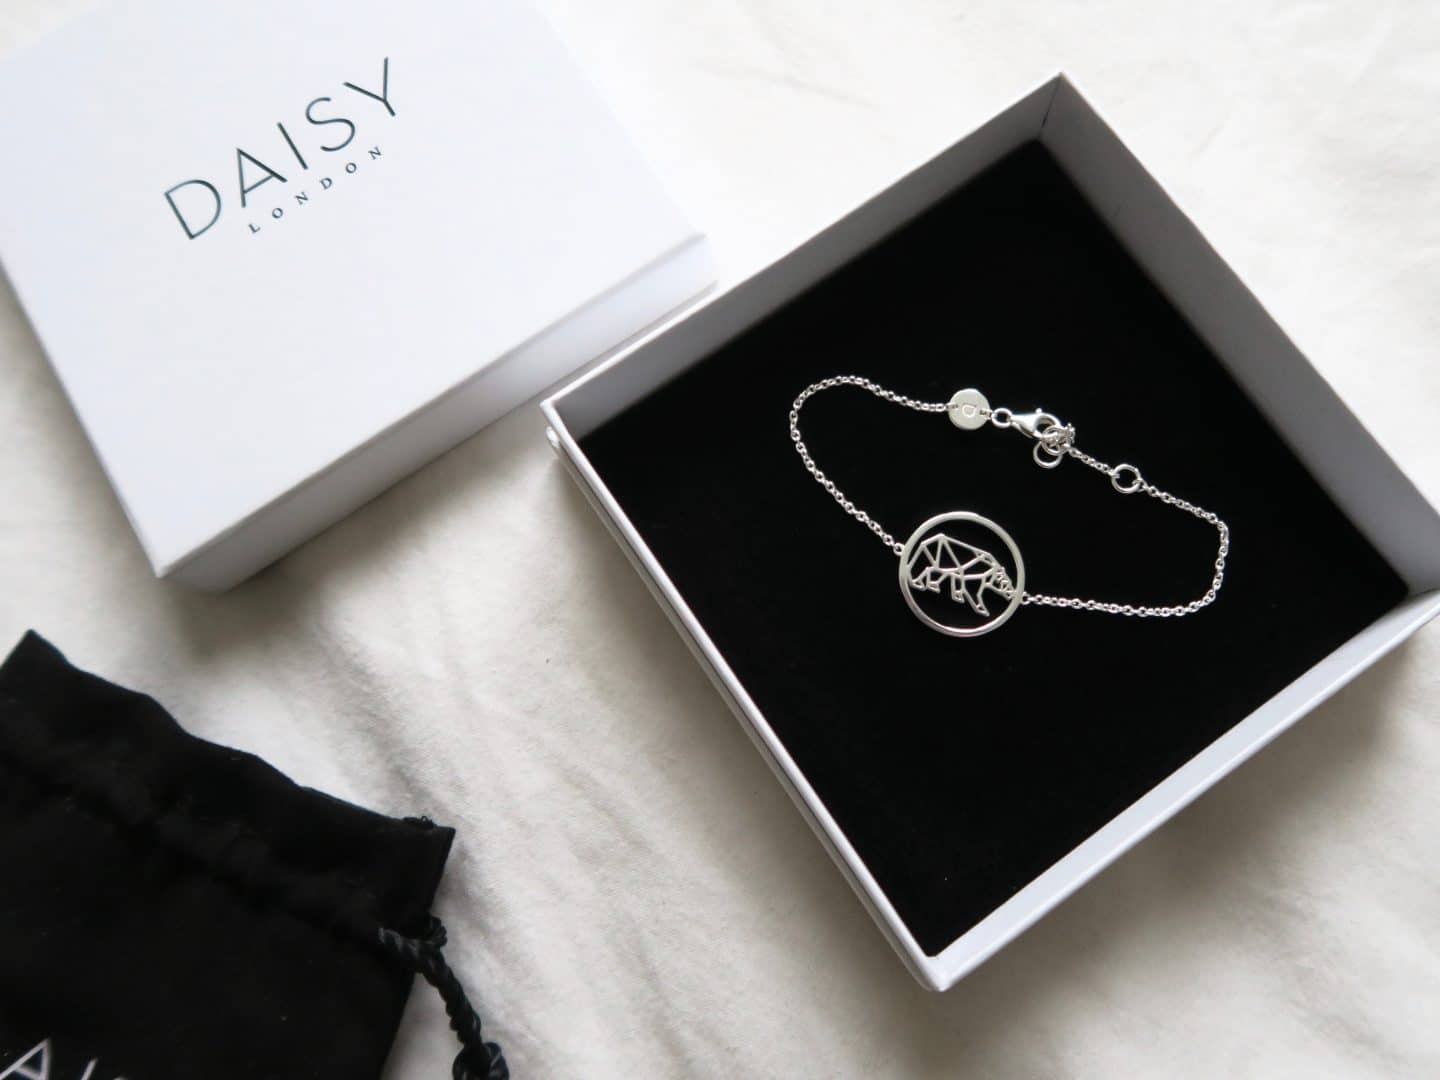 Daisy London Sustainable Jewellery | Curiously Conscious